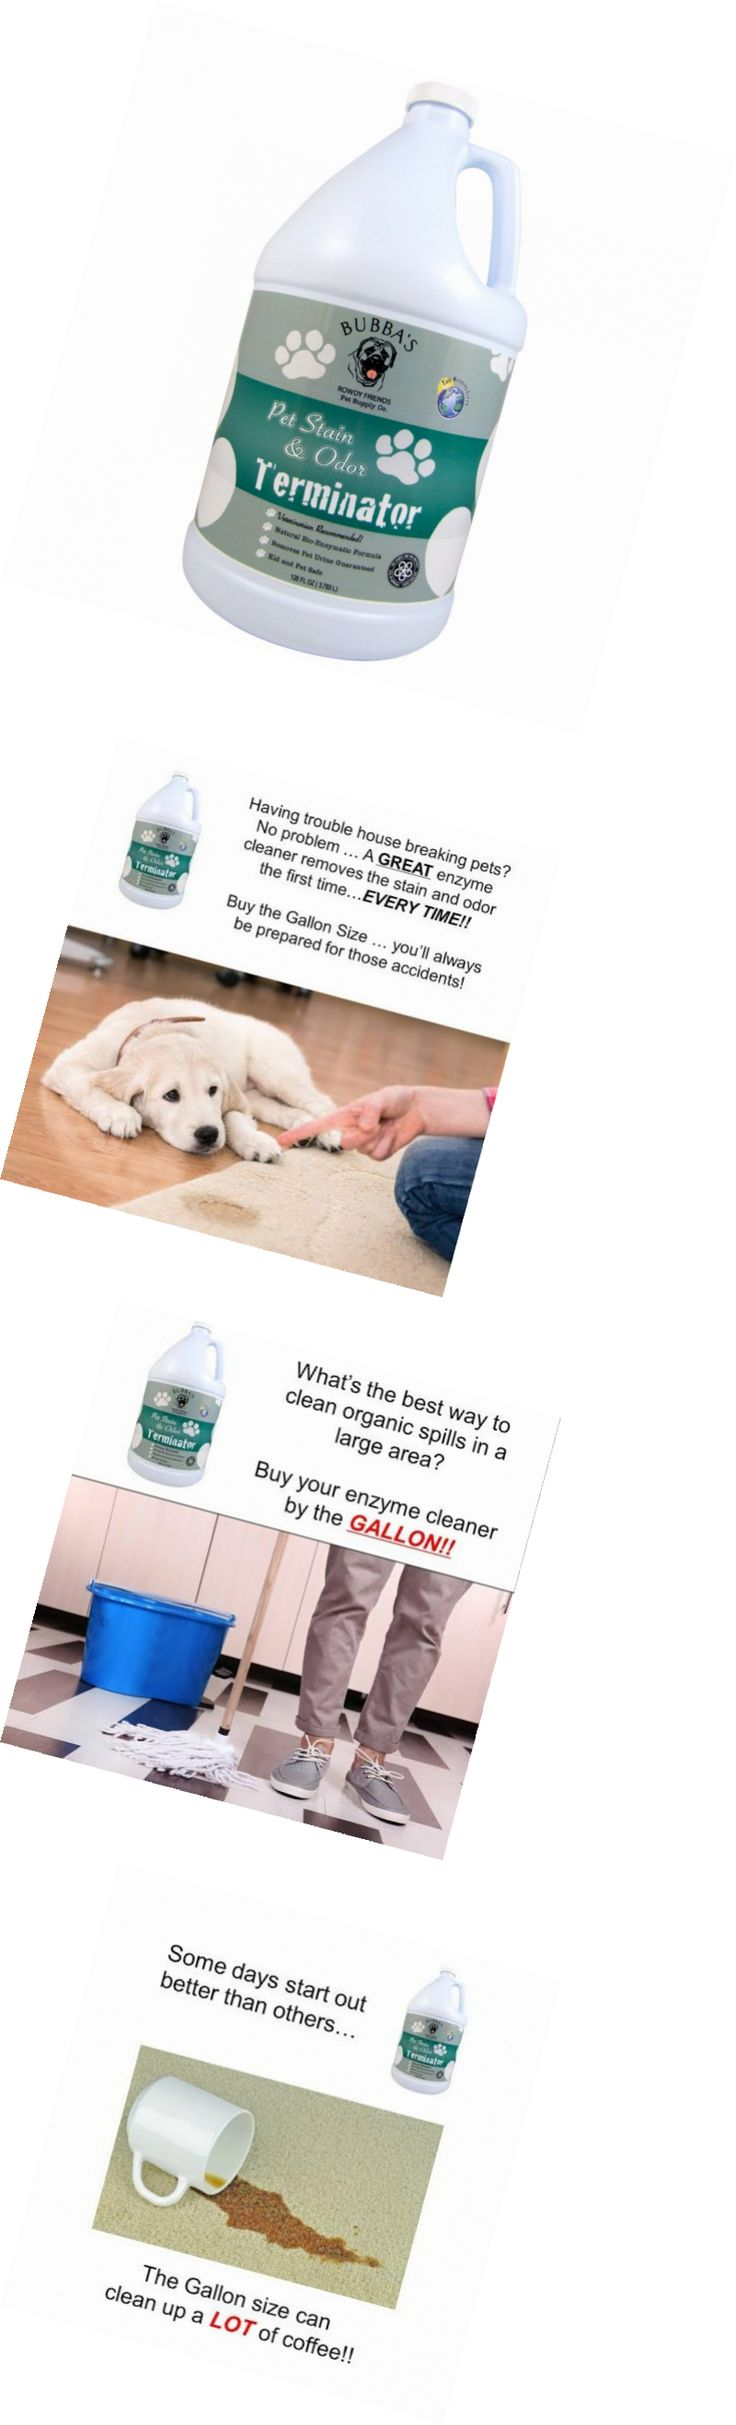 Odor and Stain Removal 134755: Super Strength Commercial Enzyme Cleaner-Pet Odor Eliminator Stain Remover -> BUY IT NOW ONLY: $49.99 on eBay!